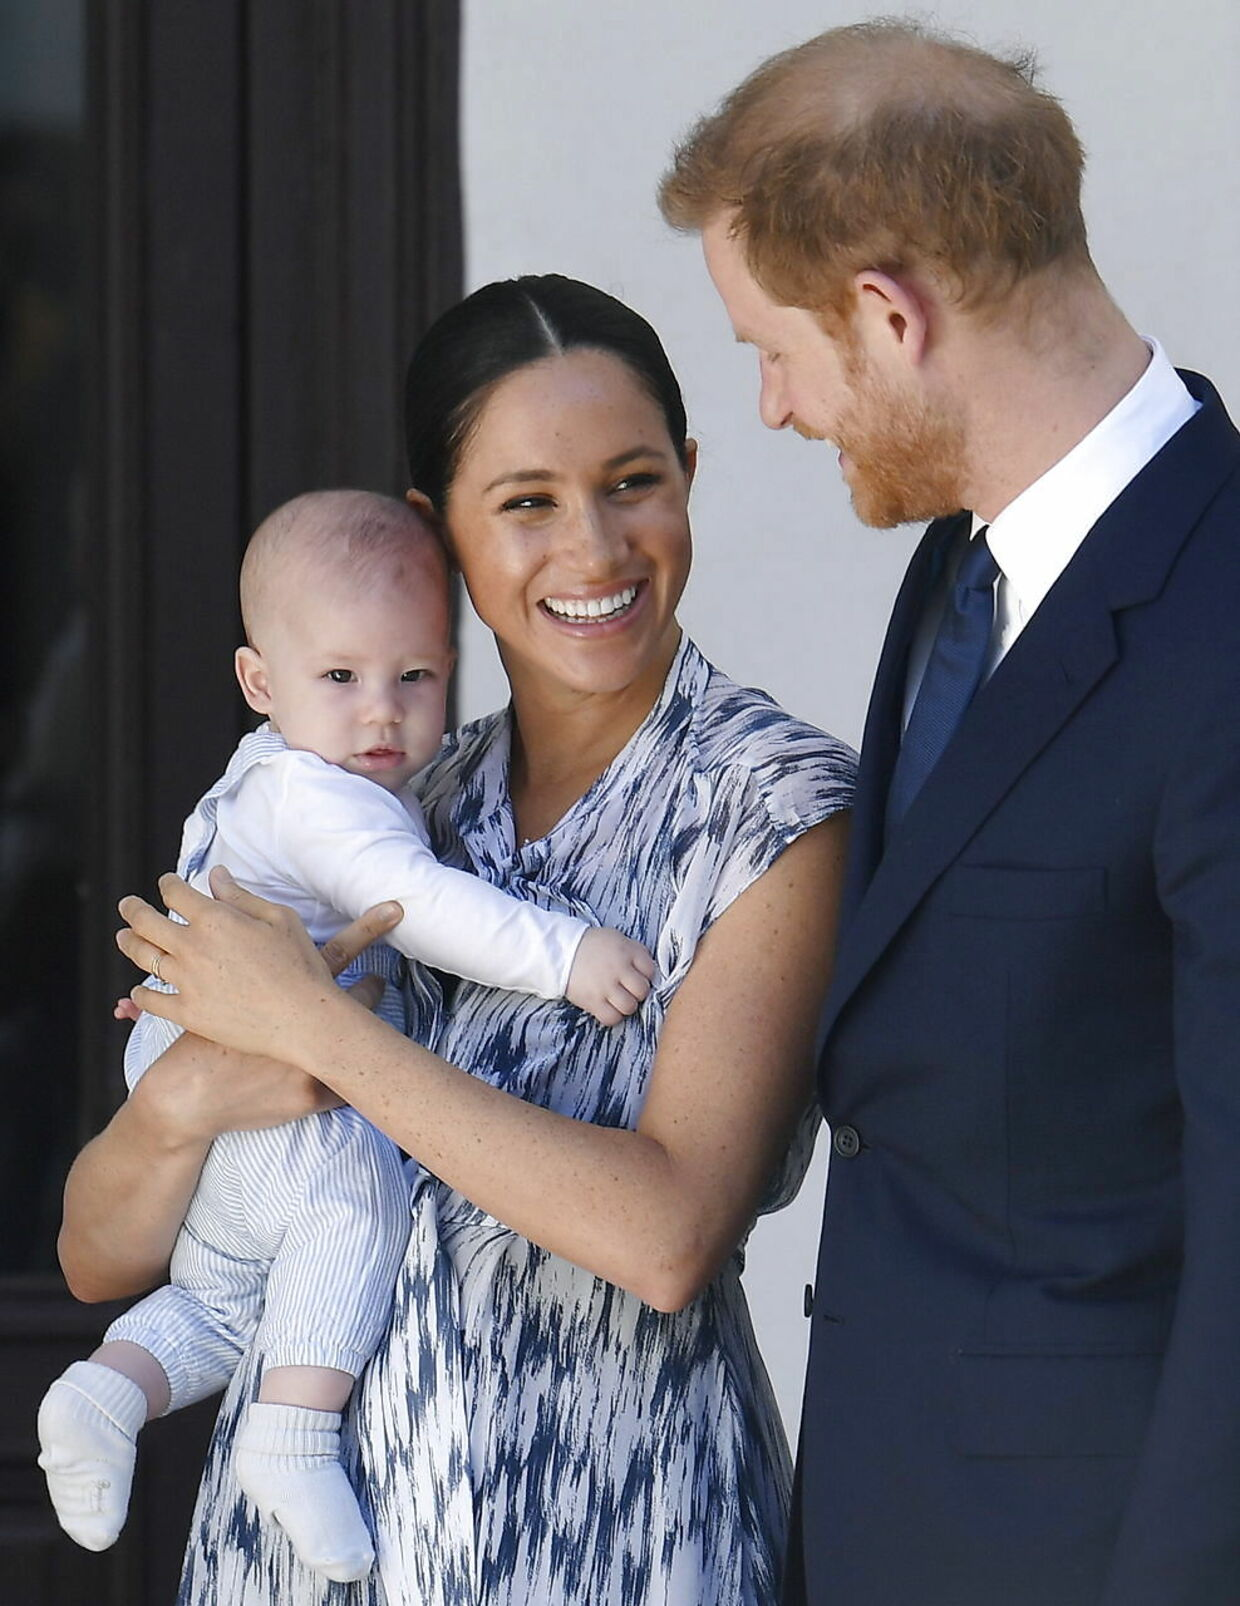 epa09251588 (FILE) - Britain's Prince Harry and his wife Duchess Meghan, holding their son Archie, at the Desmond and Leah Tutu Legacy Foundation in Cape Town, South Africa, 25 September 2019 (reissued 06 June 2021) Duchess Meghan gave birth to her second child, the couple announced on its Internet platform on 06 June 2021. Lilibet 'Lili' Diana Mountbatten-Windsor according to the announcement was born in California, USA, on Friday, 04 June 2021. The birth was confirmed by a spokesperson of the grandson of Britain's Queen Elizabeth II and his wife. EPA/TOBY MELVILLE / POOL *** Local Caption *** 56698564